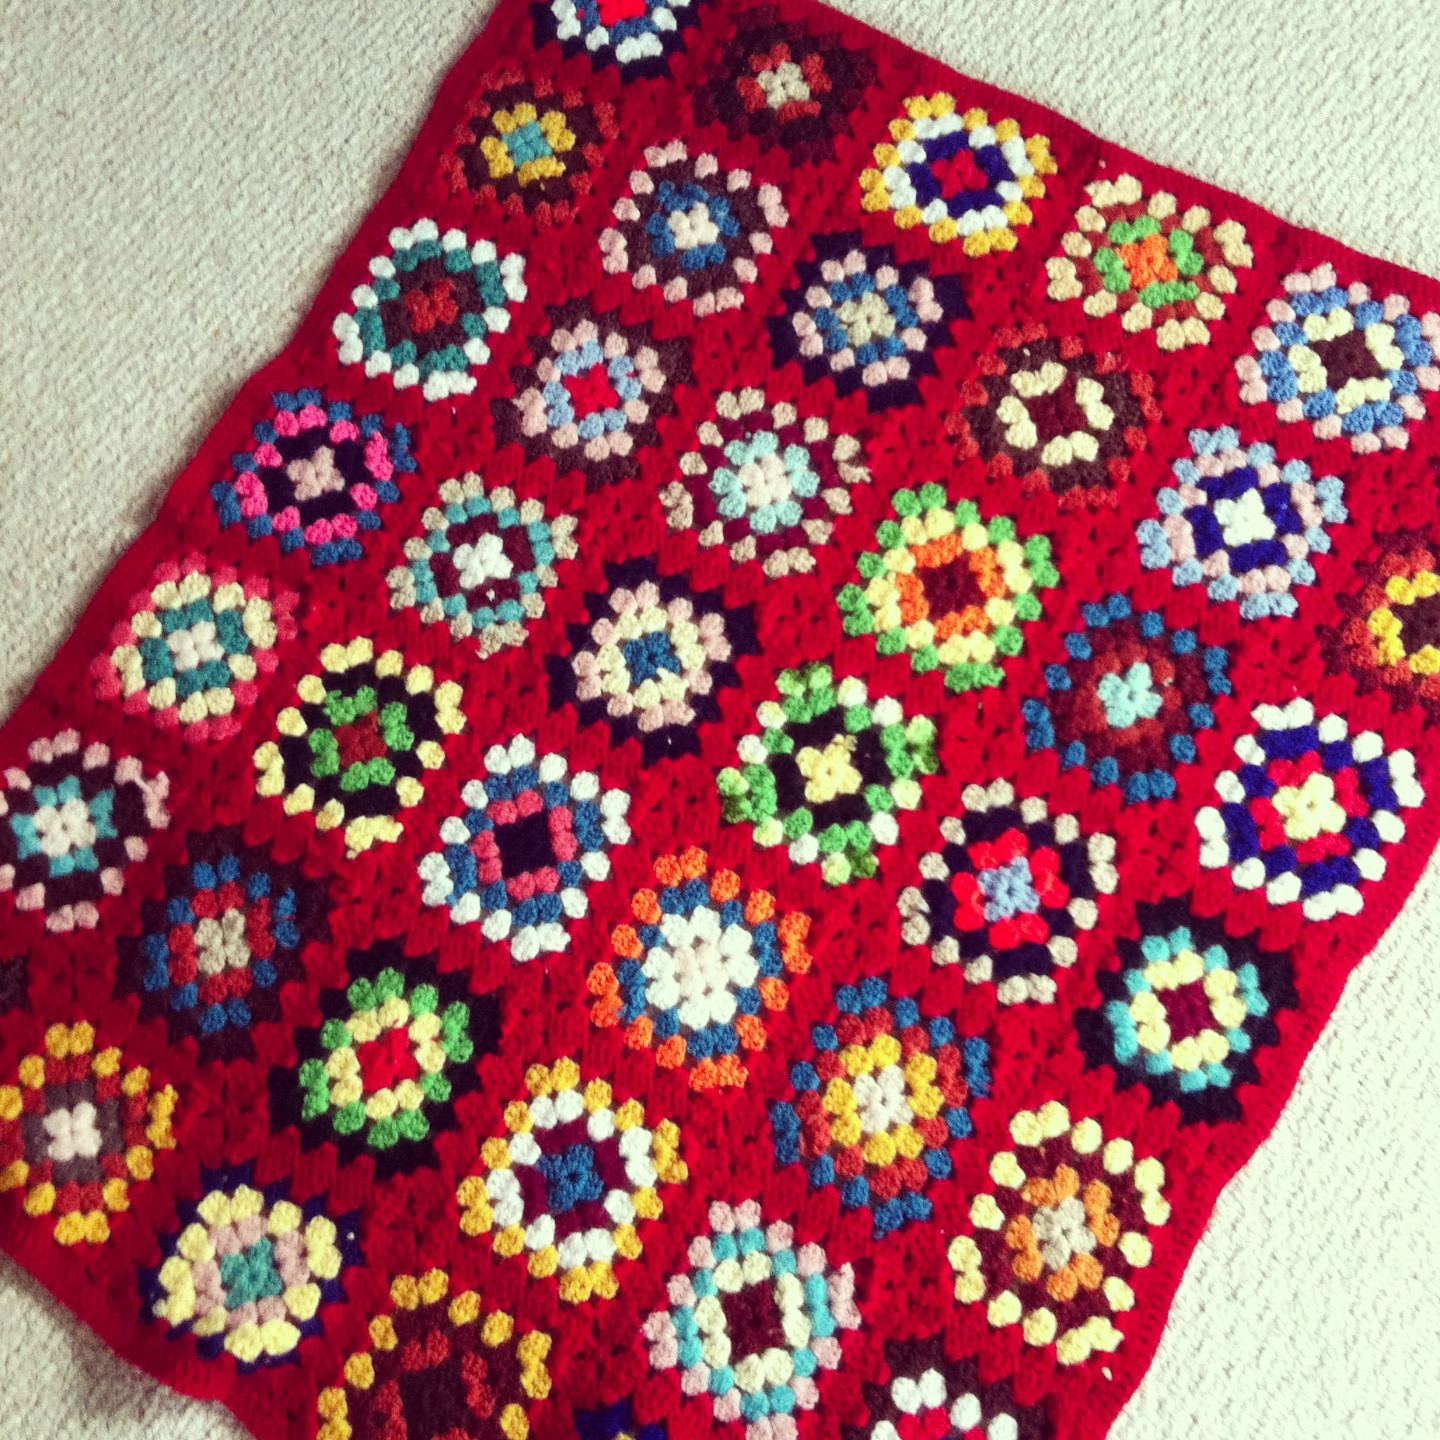 New Vintage Finds Granny Square Crochet Afghans Hello Granny Square Afghan Pattern Beginners Of Superb 24 Pictures Granny Square Afghan Pattern Beginners